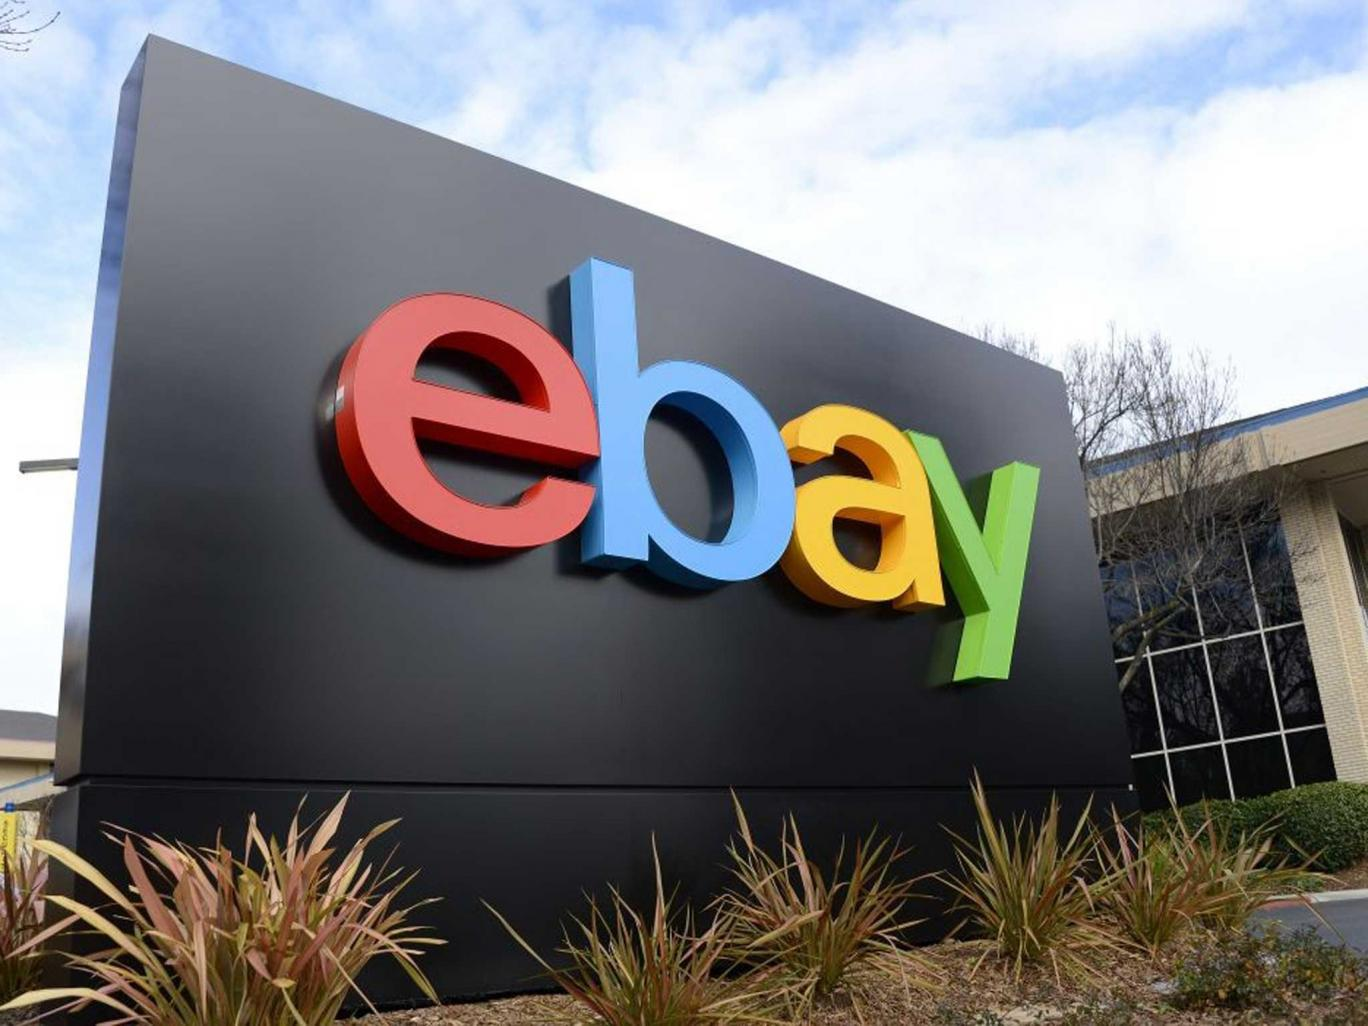 EBay Inc Shares Tumble as Q4 Forecast Could Miss View (EBAY)